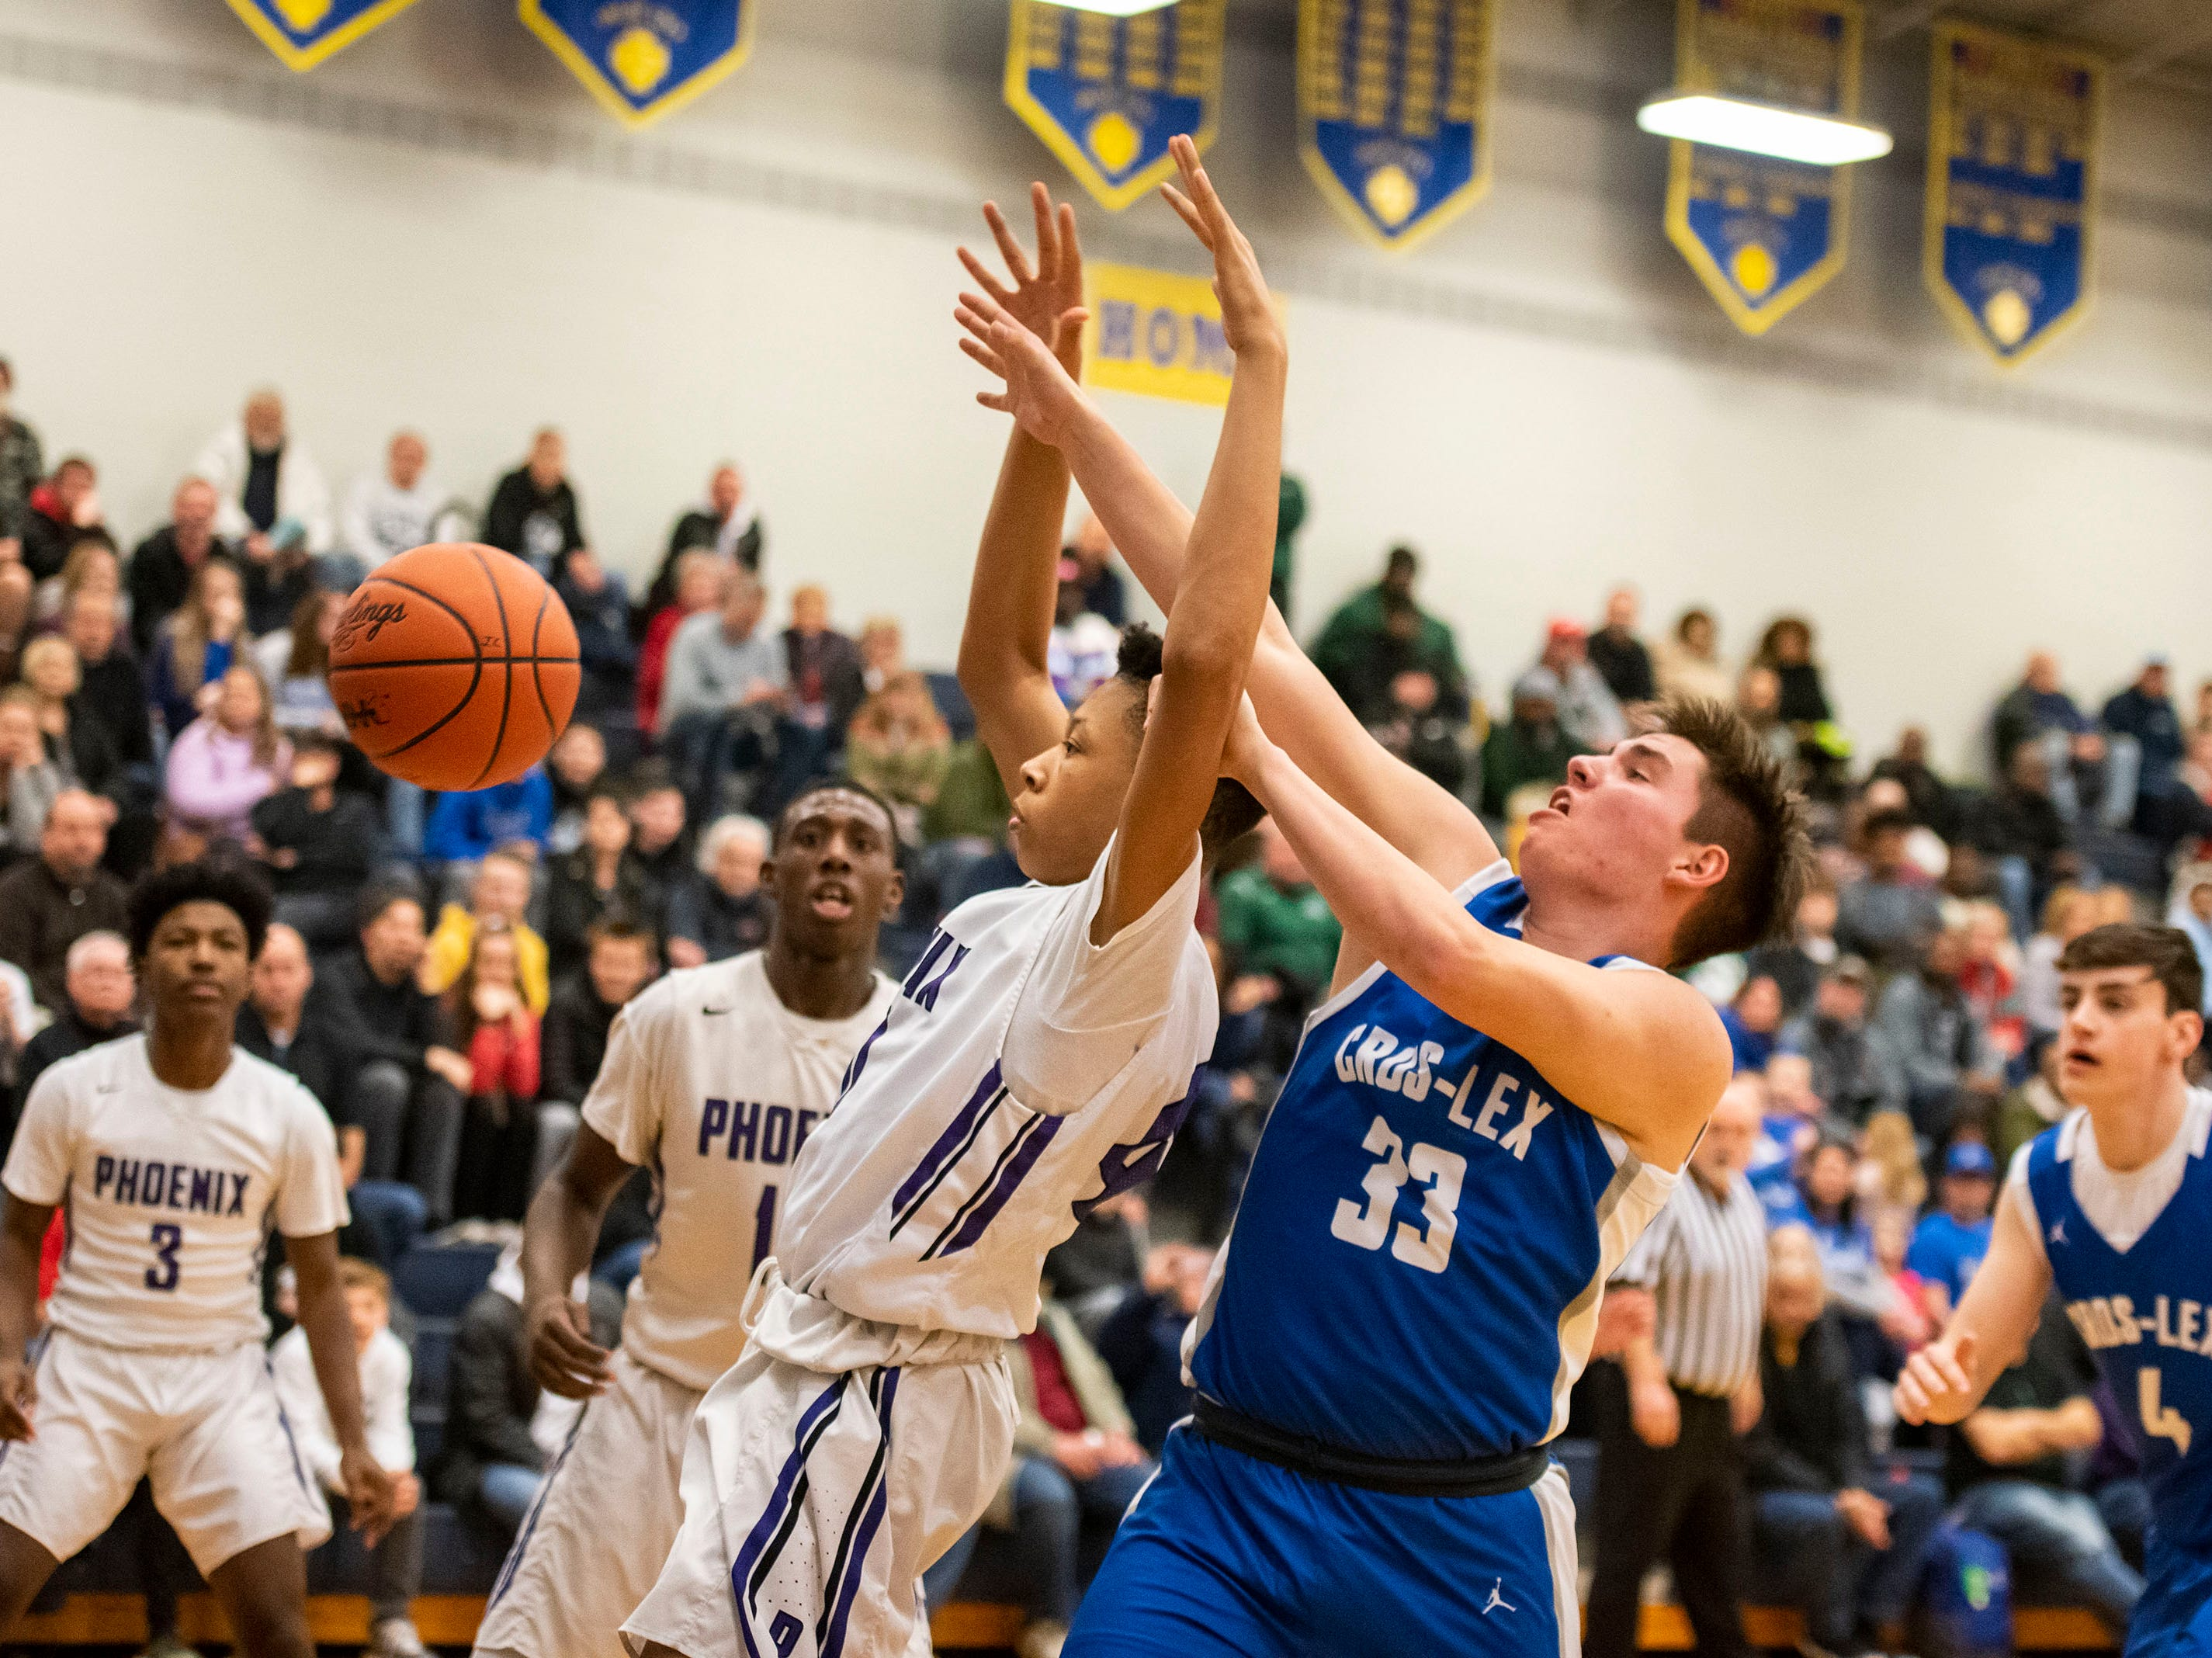 Cros-Lex's Nolan Durand (33)'s shot is blocked by a player from Pontiac High School in the MHSAA Division 2 regional basketball game Tuesday, March 5, 2019 at Imlay City High School.